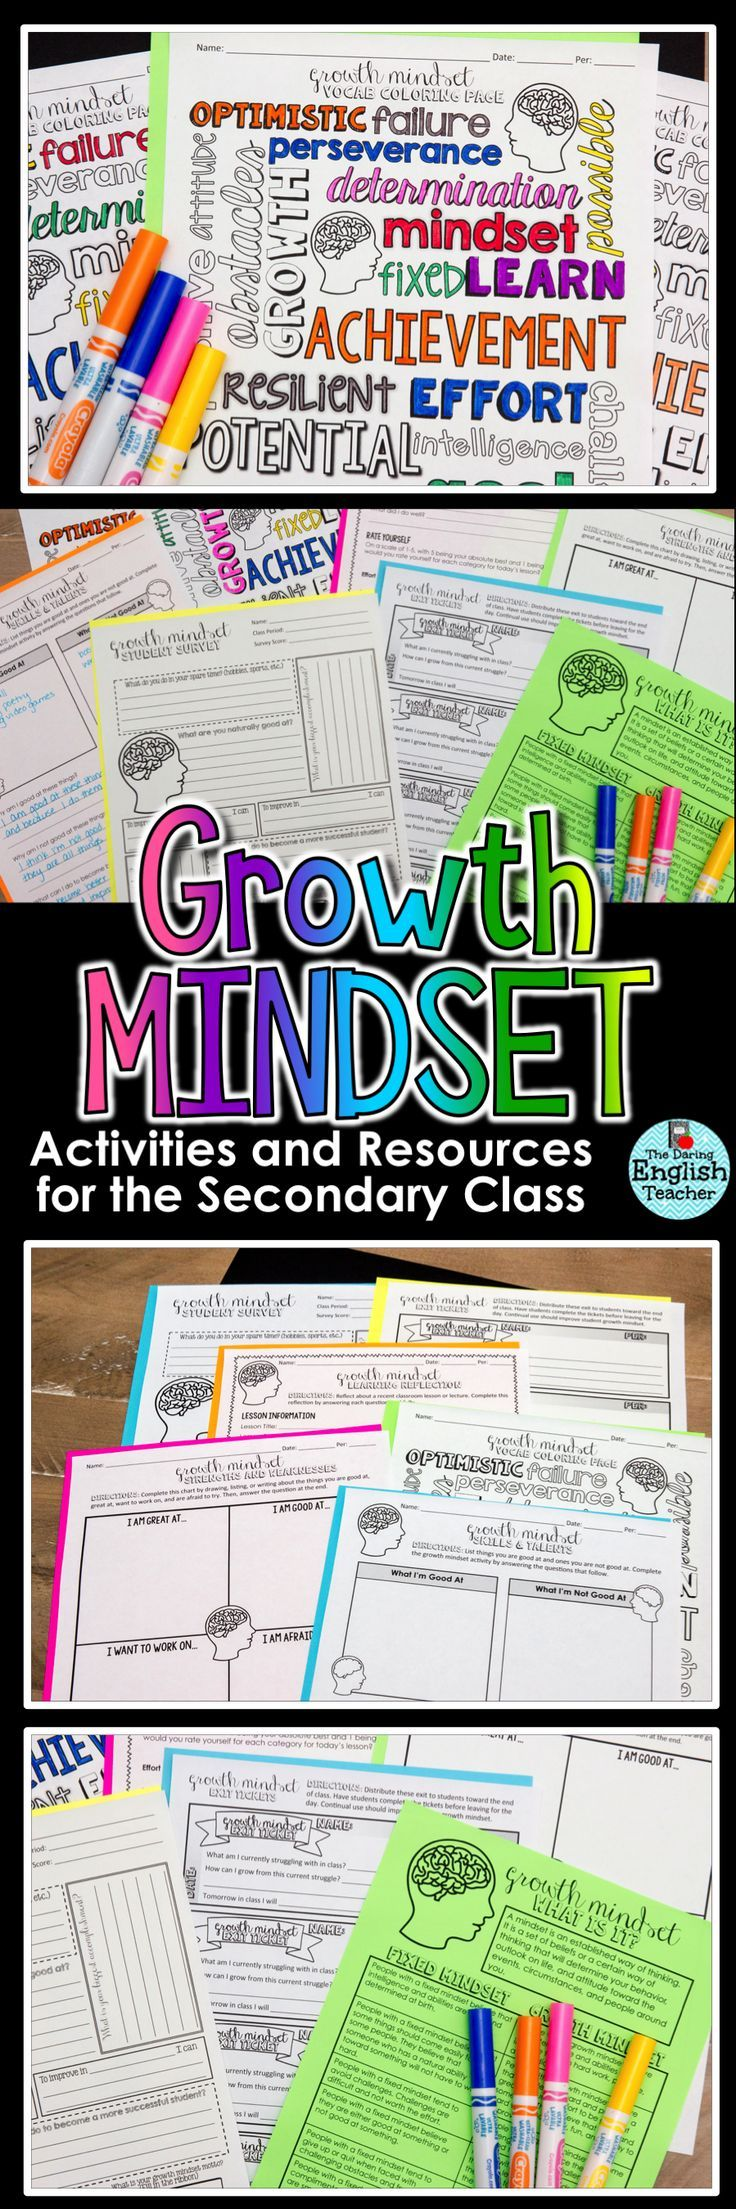 Poster design high school lesson - Incorporate Growth Mindset Teaching Resources Activities And Strategies Into Your Middle School Or High